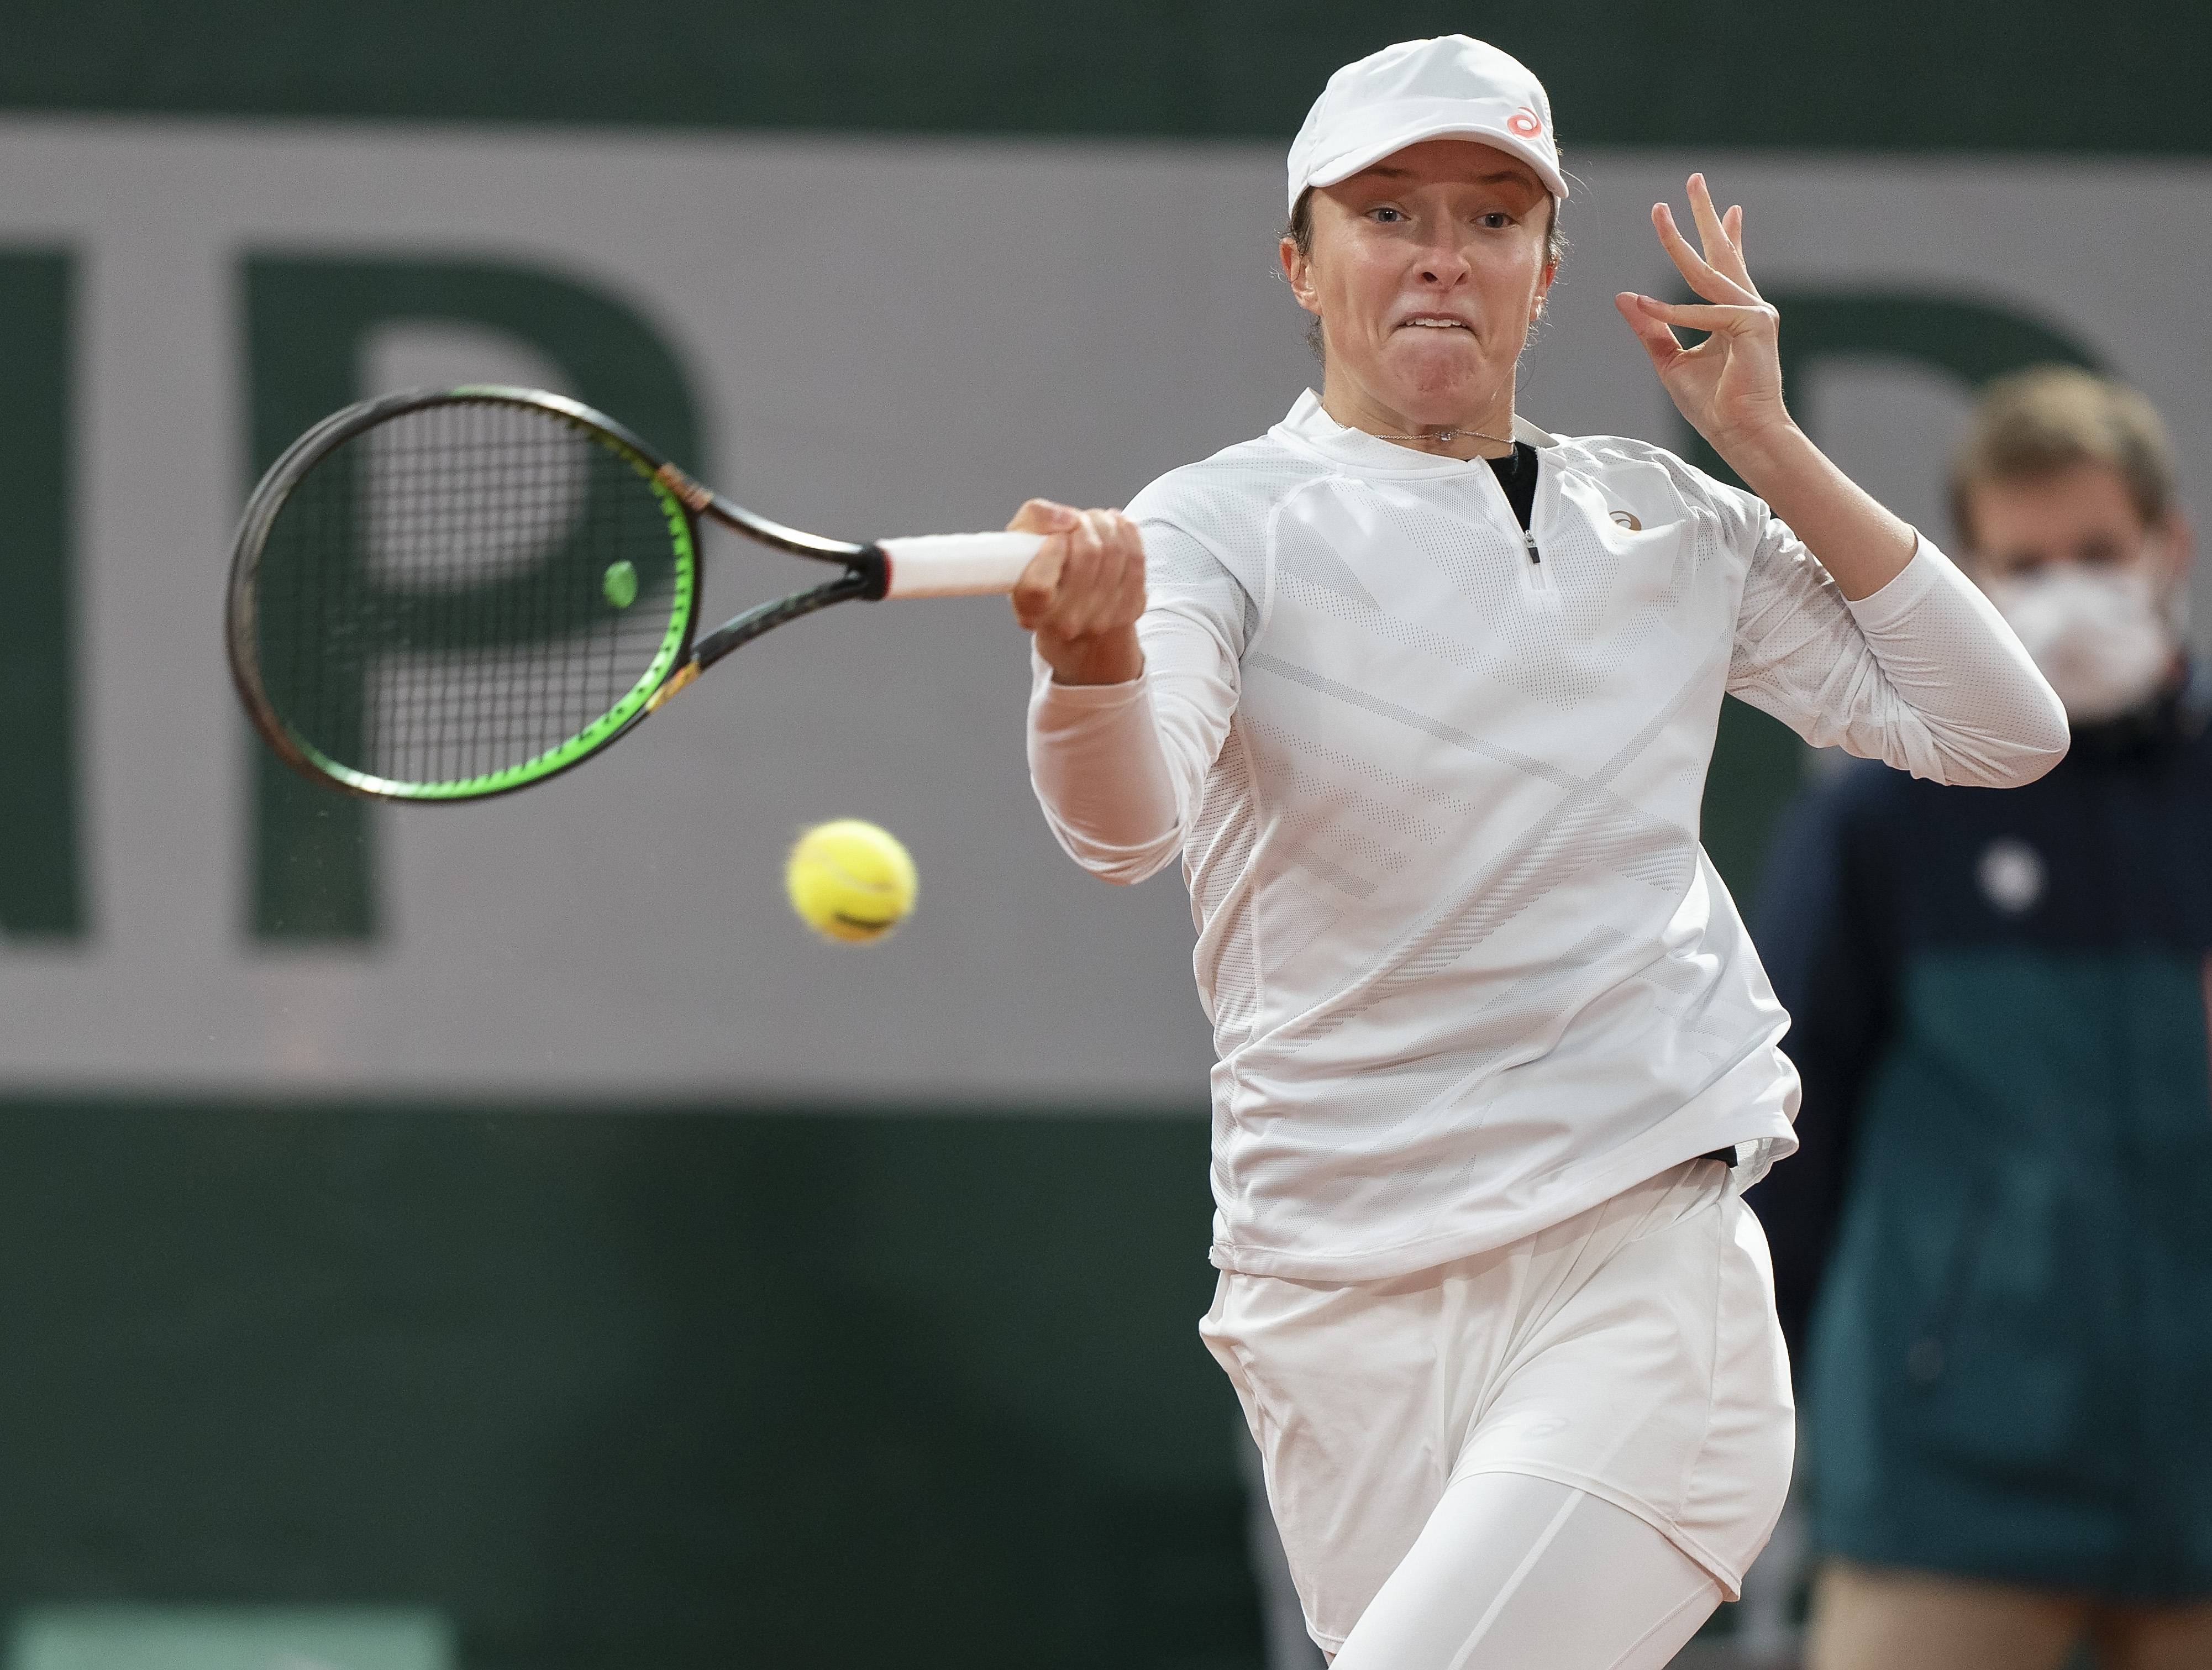 Iga Swiatek, Jannik Sinner deliver stunning upsets at the French Open